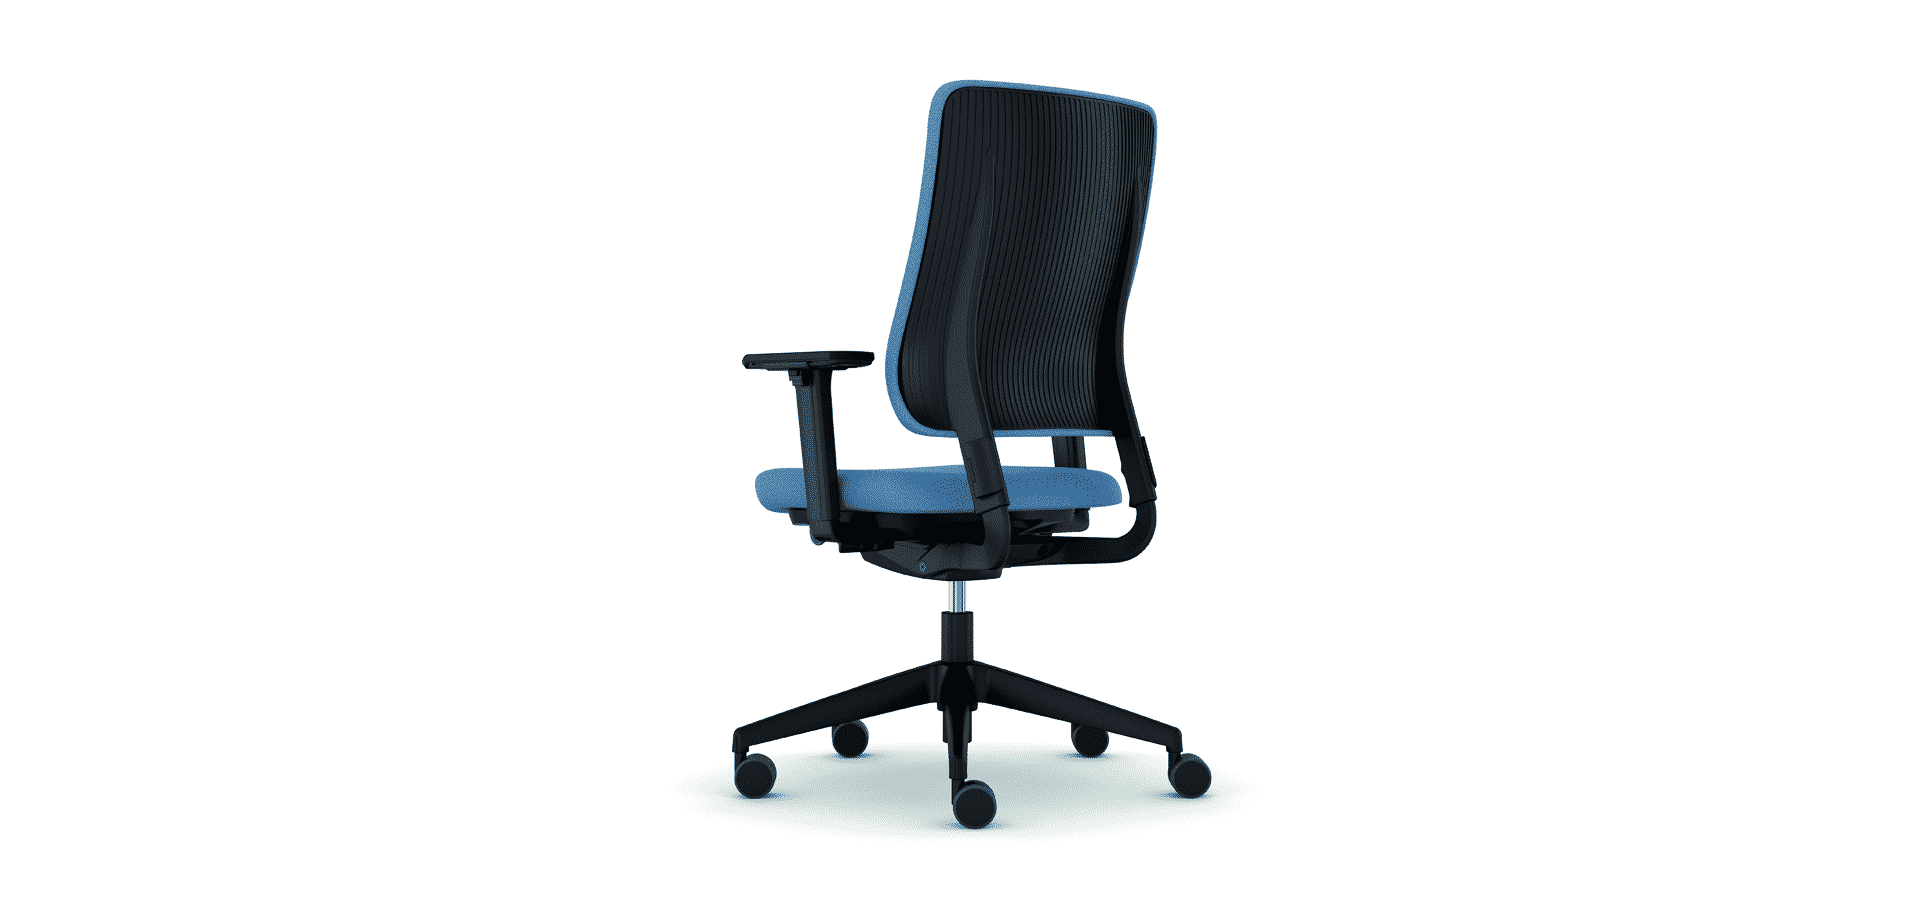 KI Chose Drumback Because Of The Organic Design Unique Backrest Concept Ergonomic Controls Sustainable Production And Competitive Price